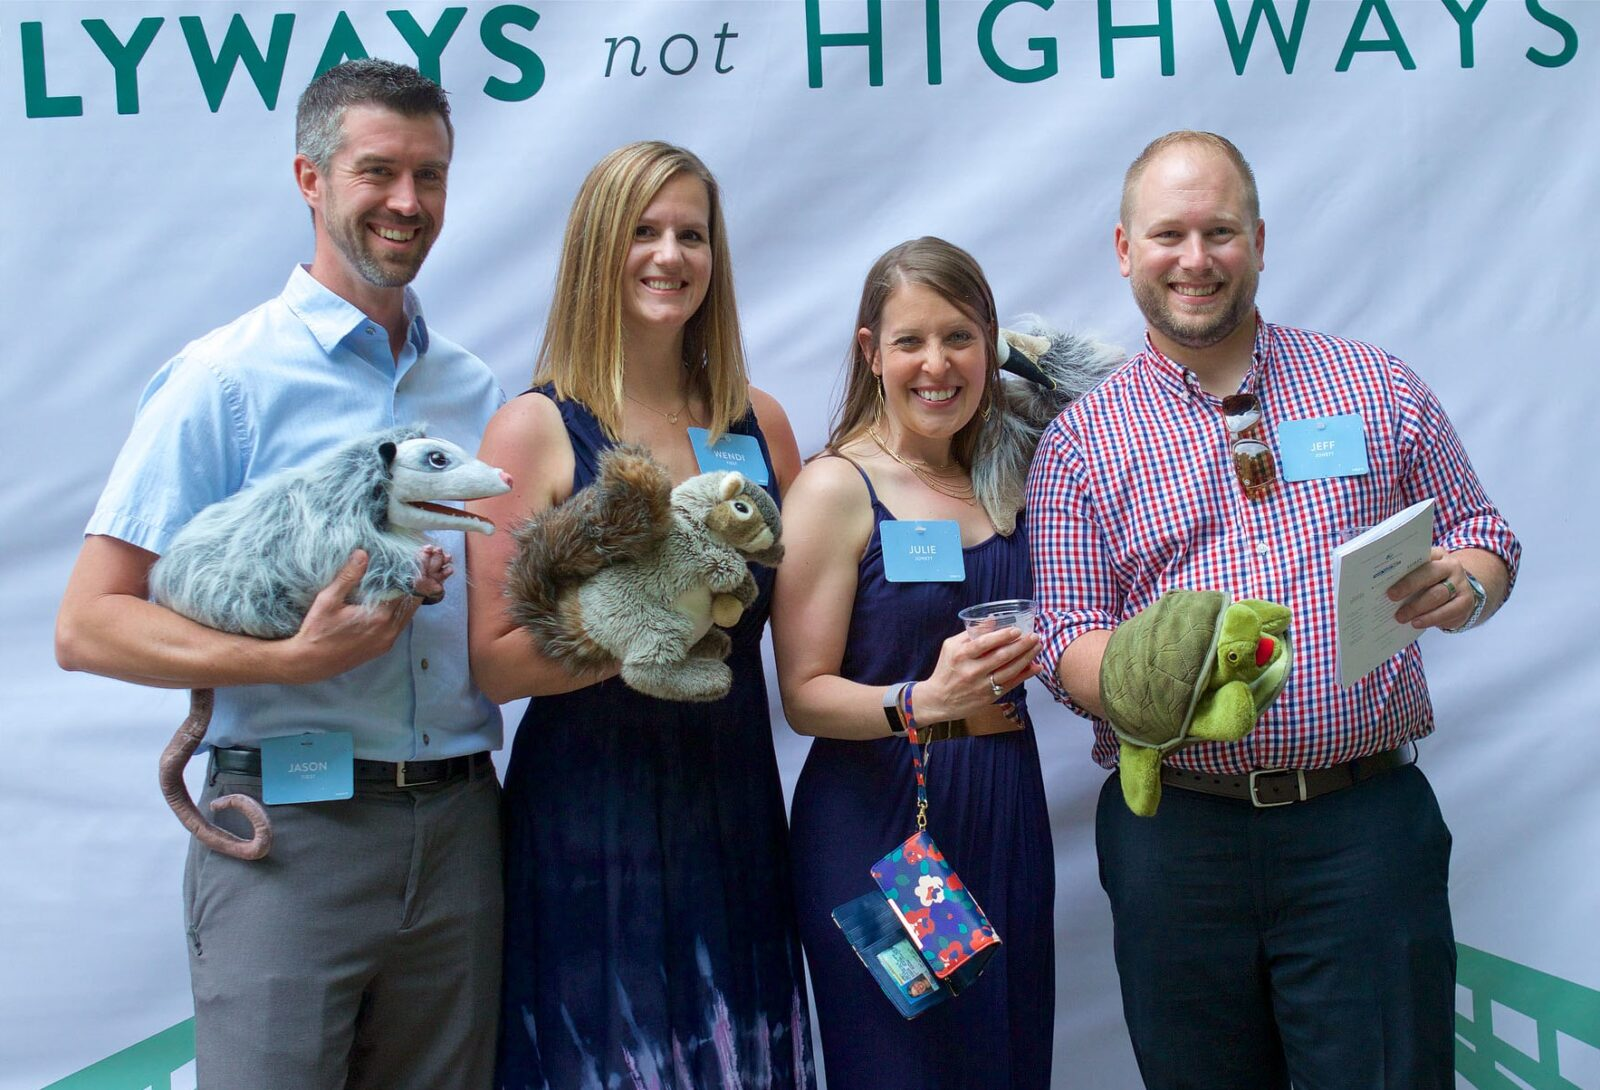 Flyways not Highways Shaker Lakes annual benefit